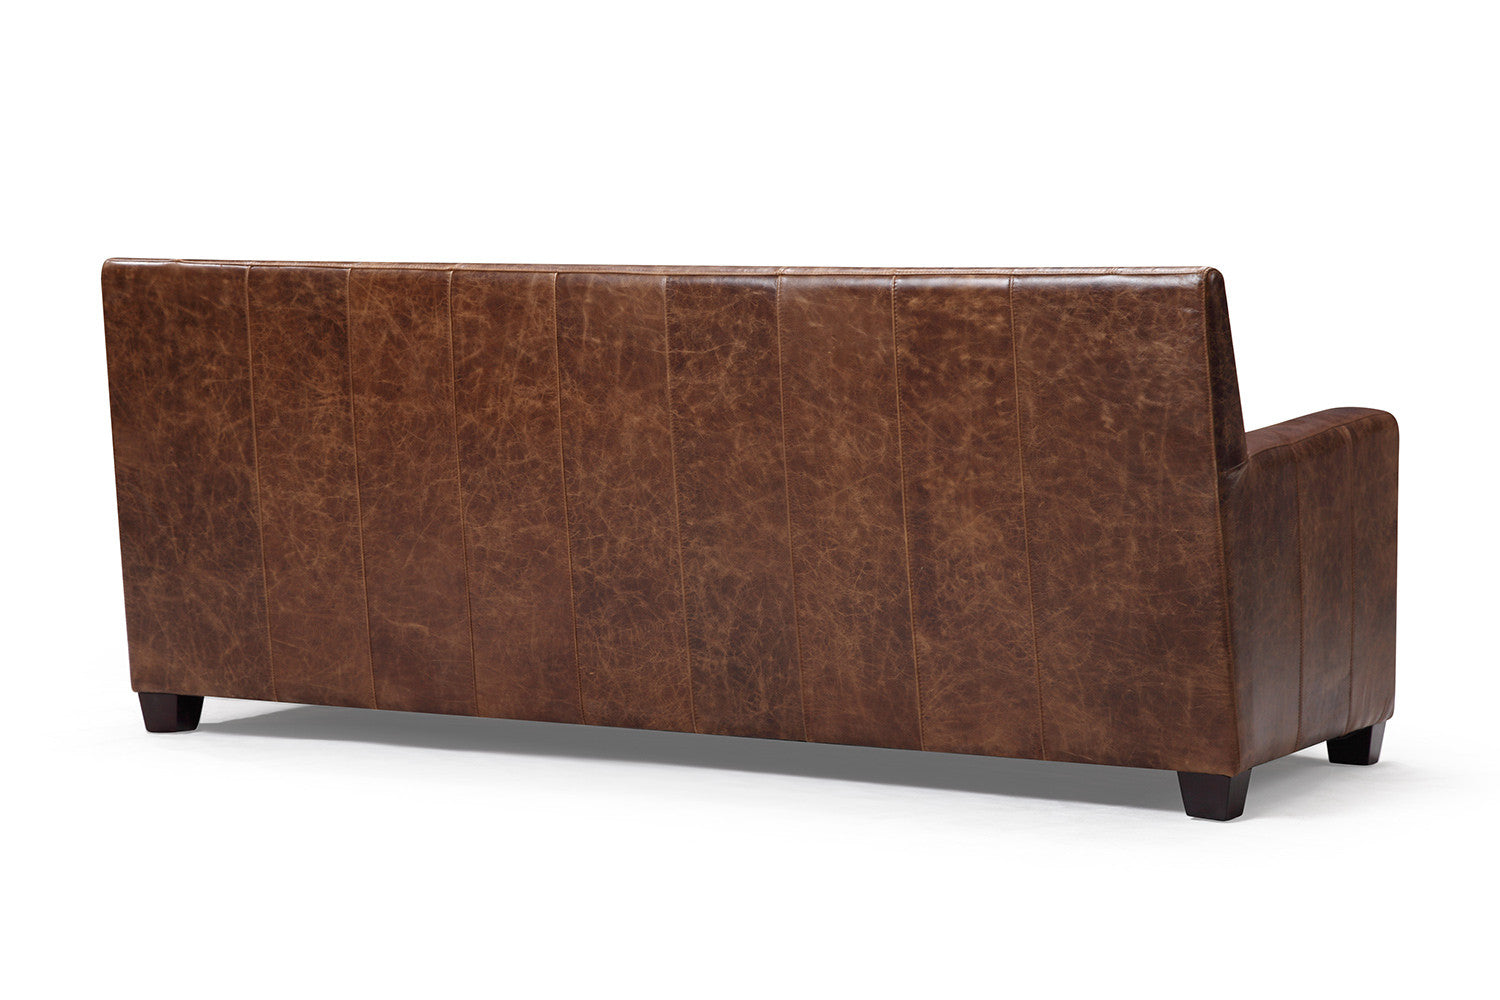 Delicieux Back Of The Belgian Leather Sofa